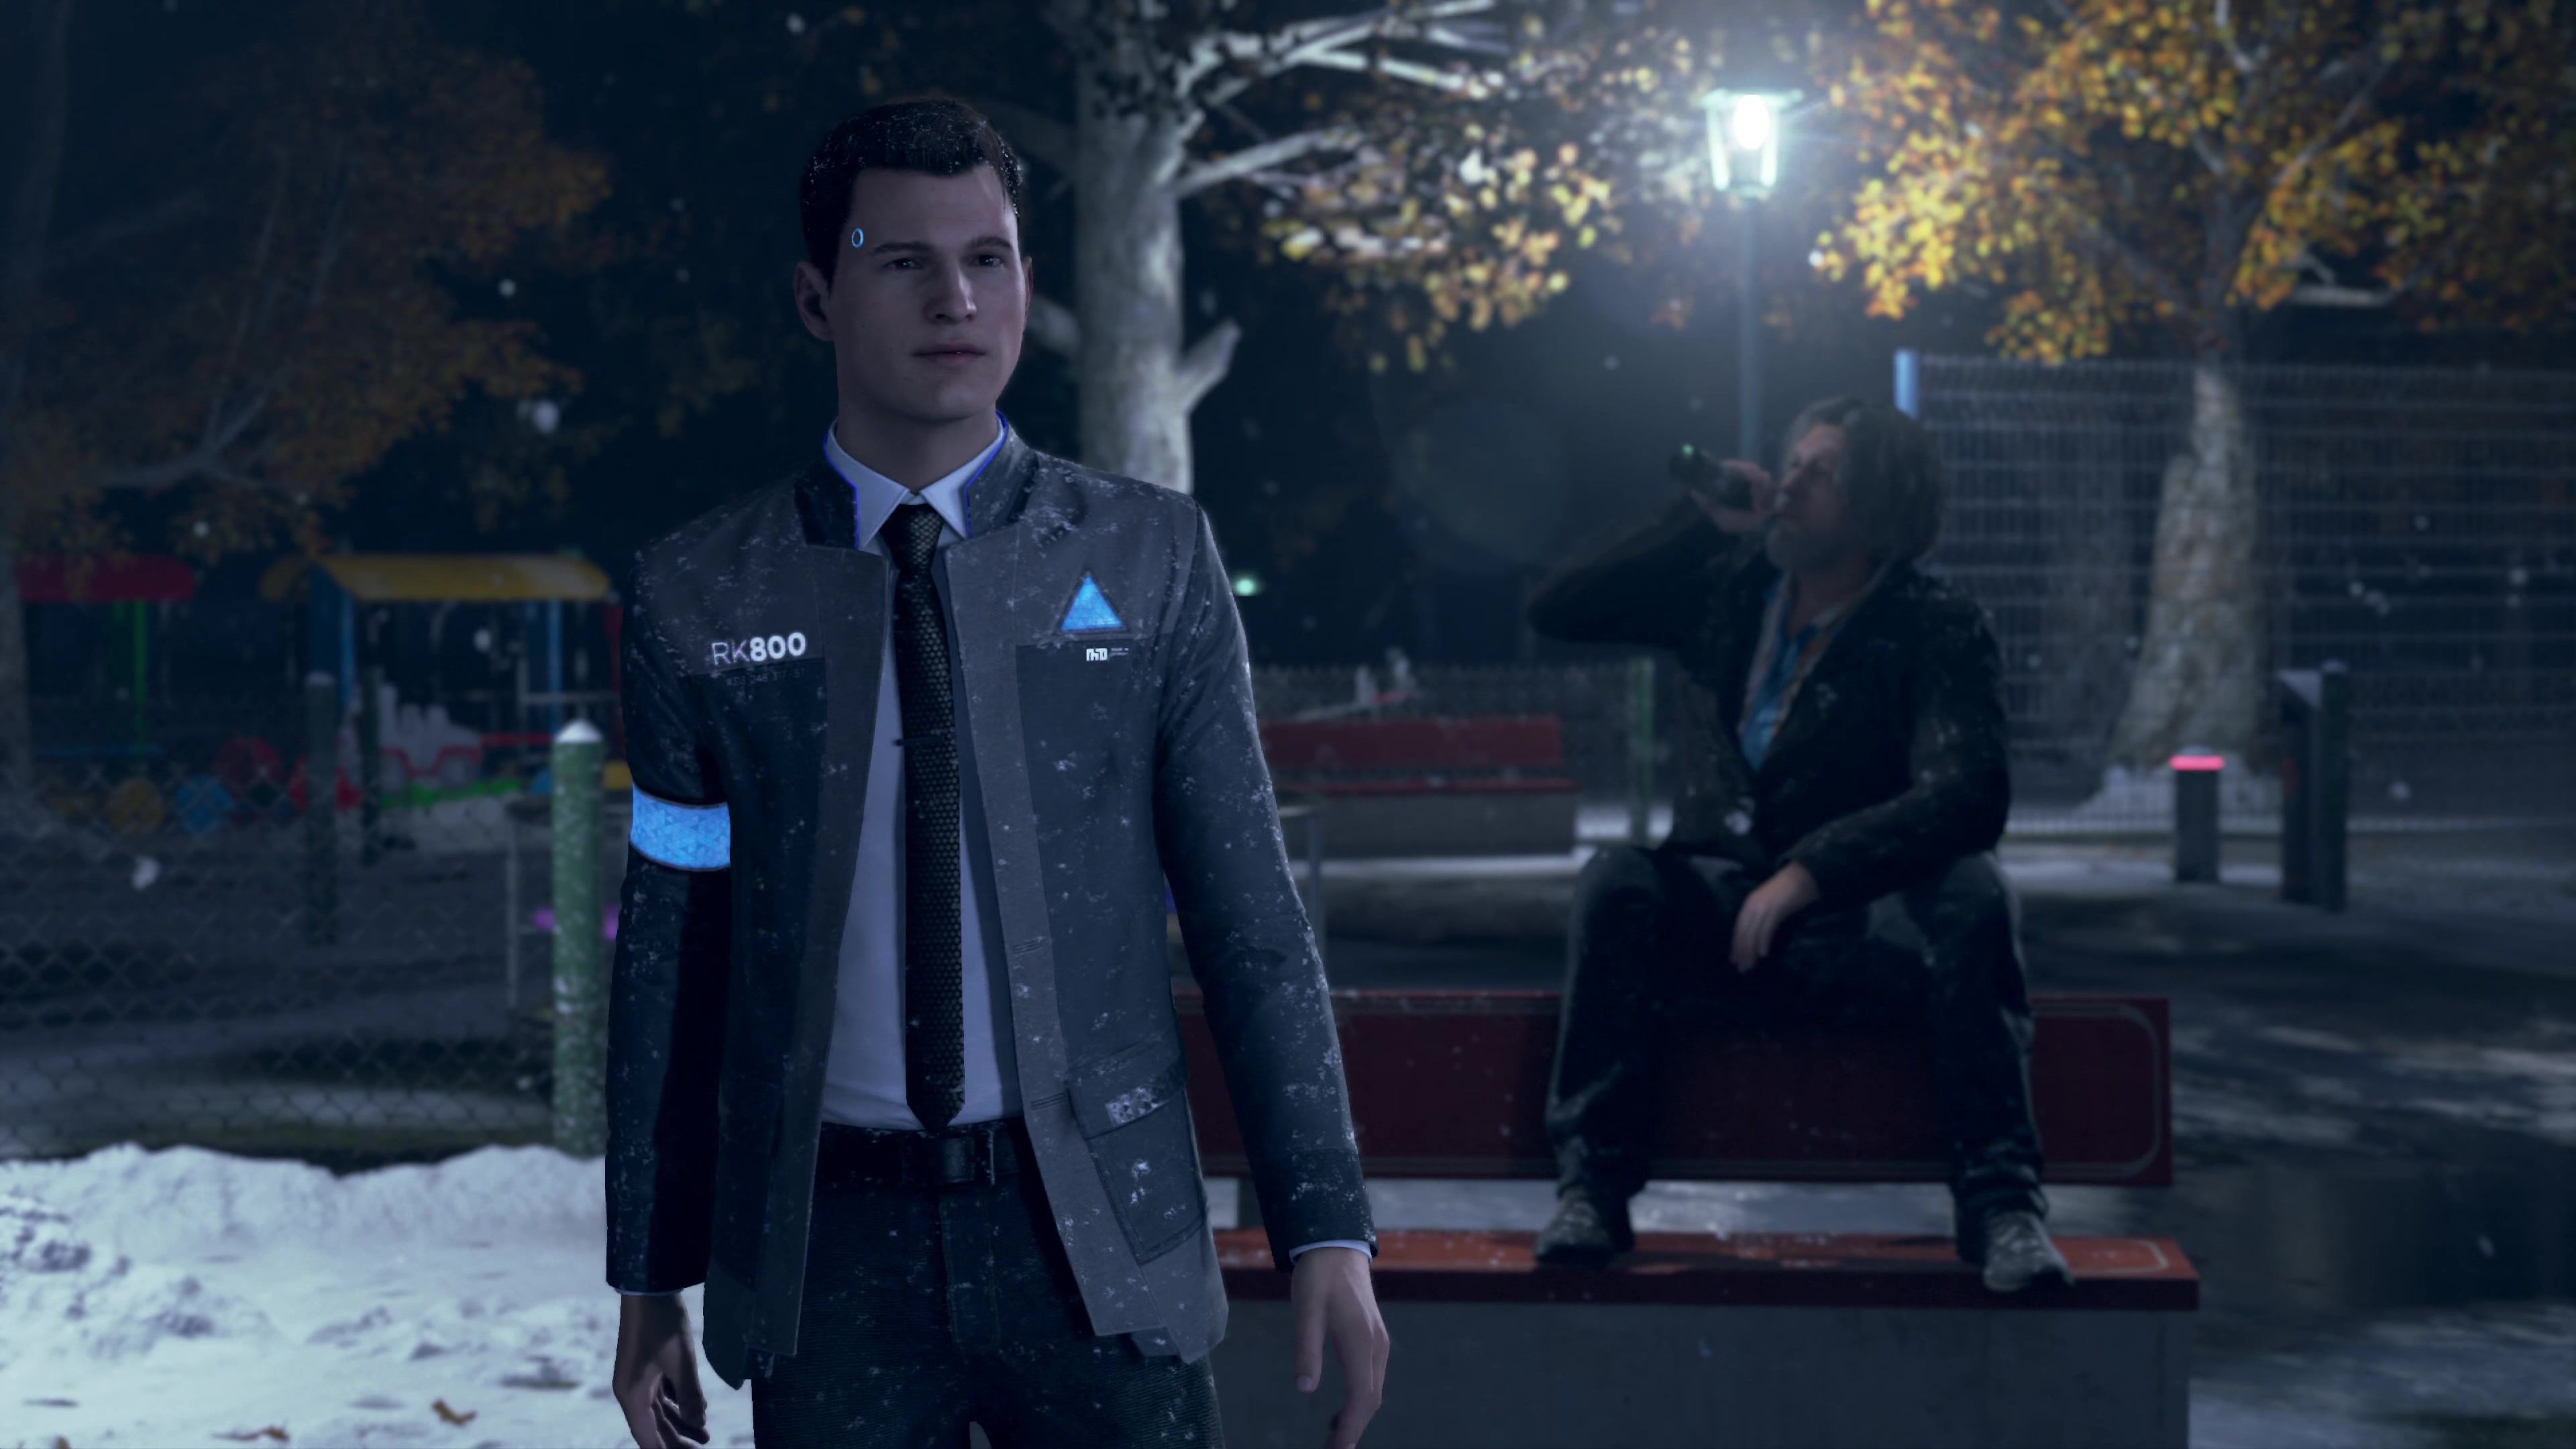 Detroit Become Human Wallpapers Top Free Detroit Become Human